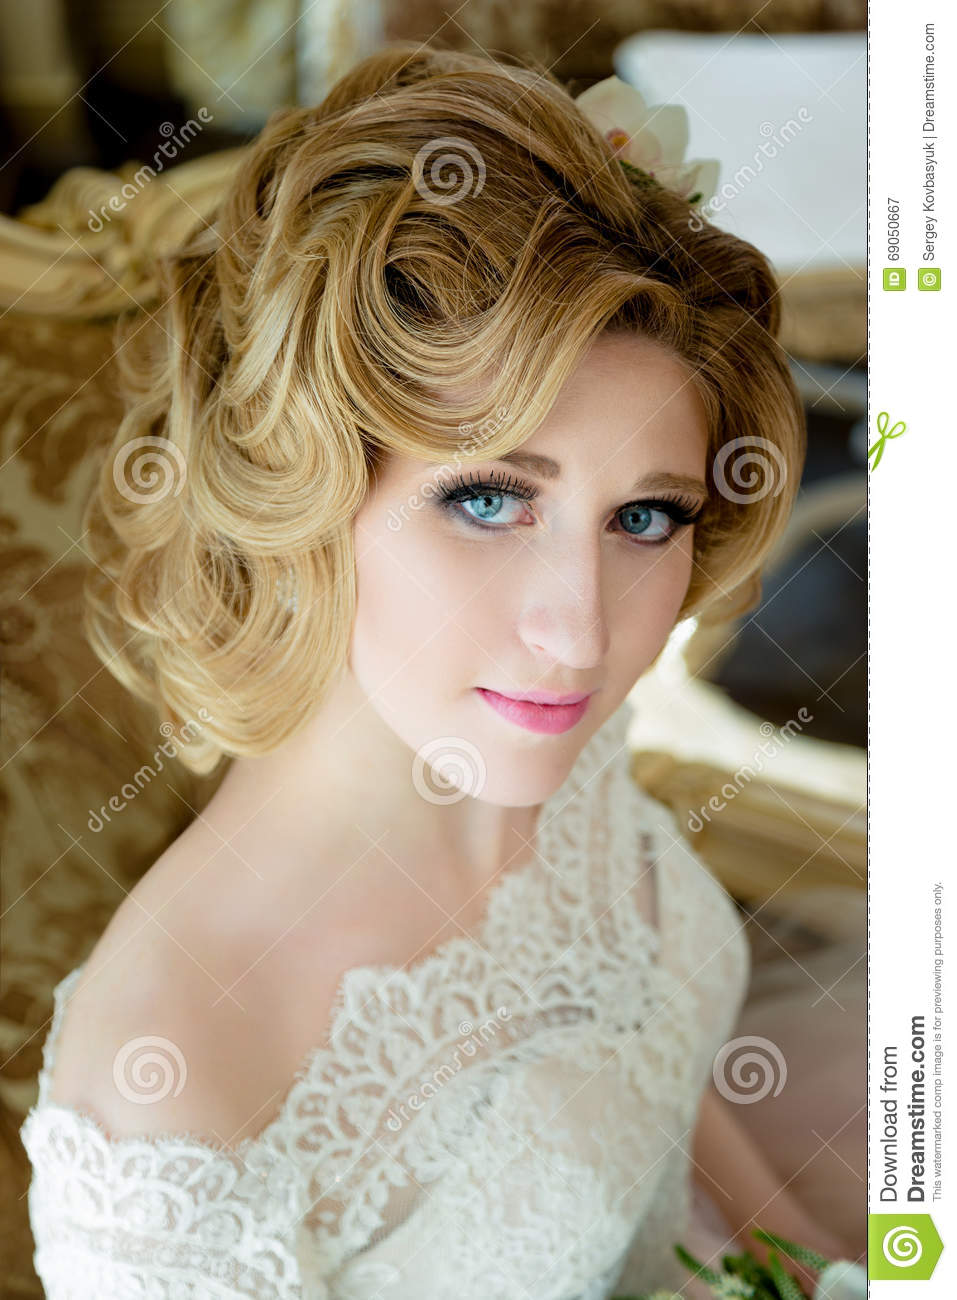 beautiful blonde bride portrait wedding makeup and hairstyle stock